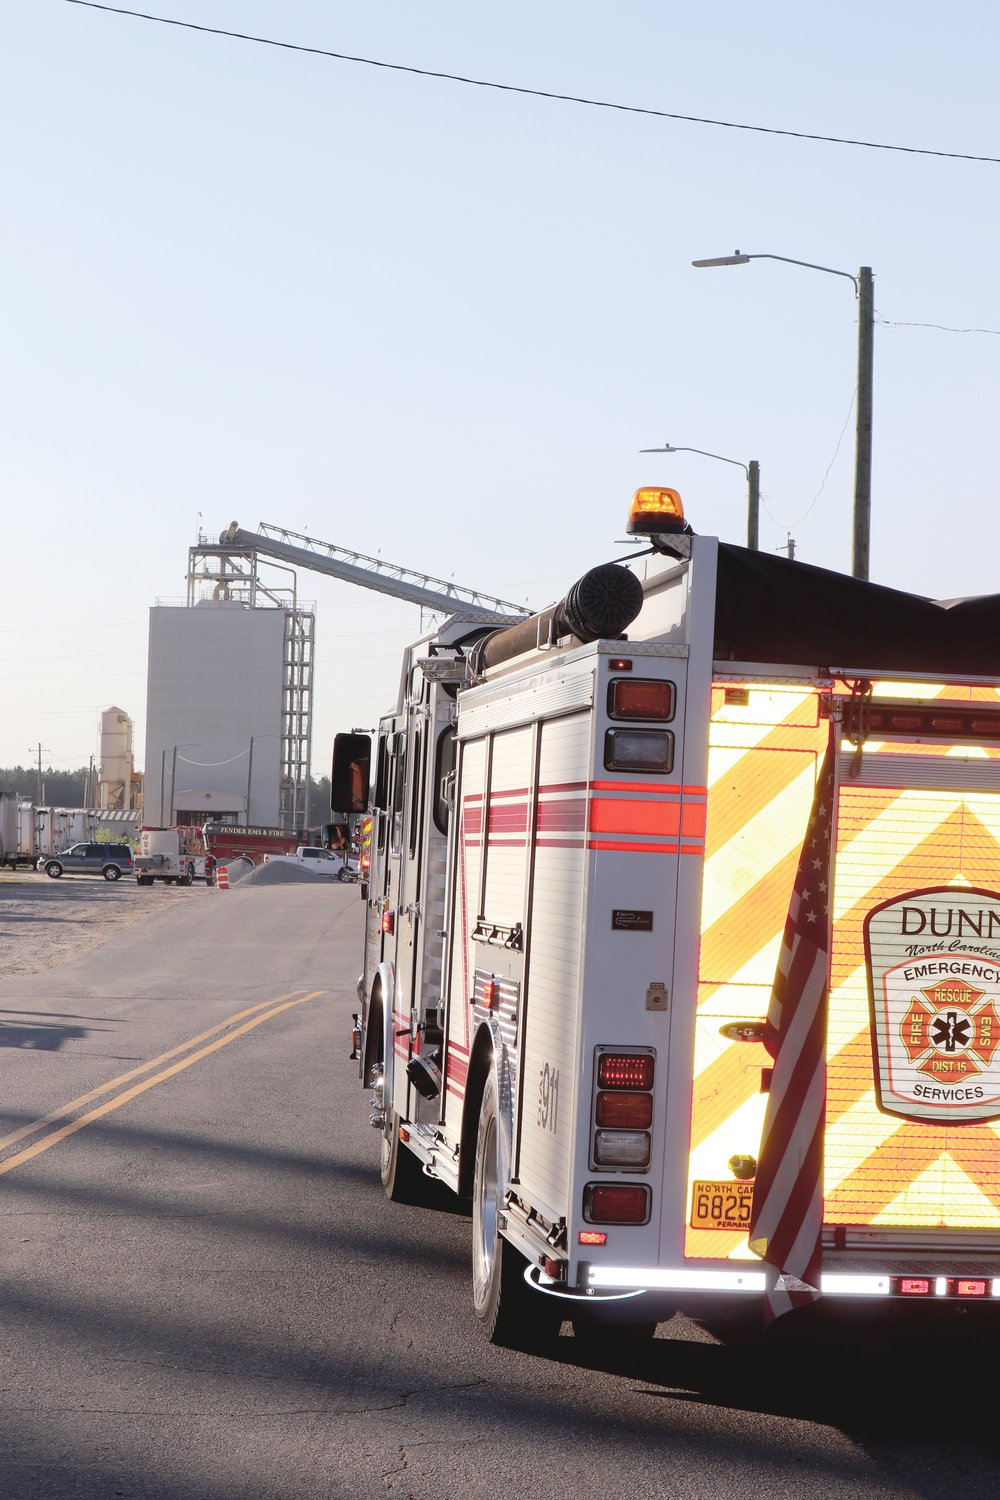 Dunn Emergency Services was one of several local fire and rescue crews assisting with the large Enviva Pellet Plant fire Friday.